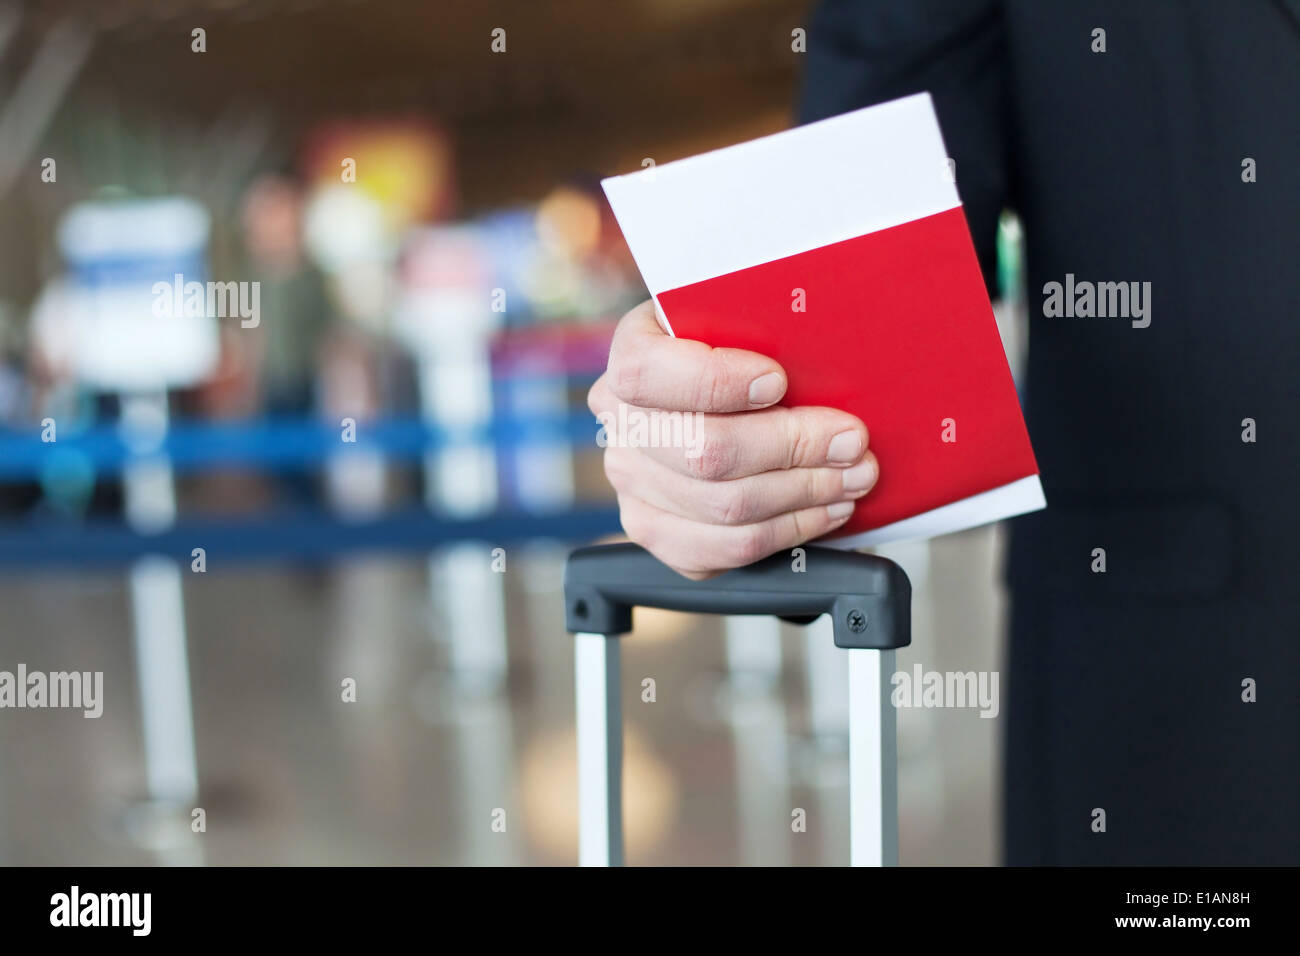 close up of passport and ticket in hand in airport - Stock Image